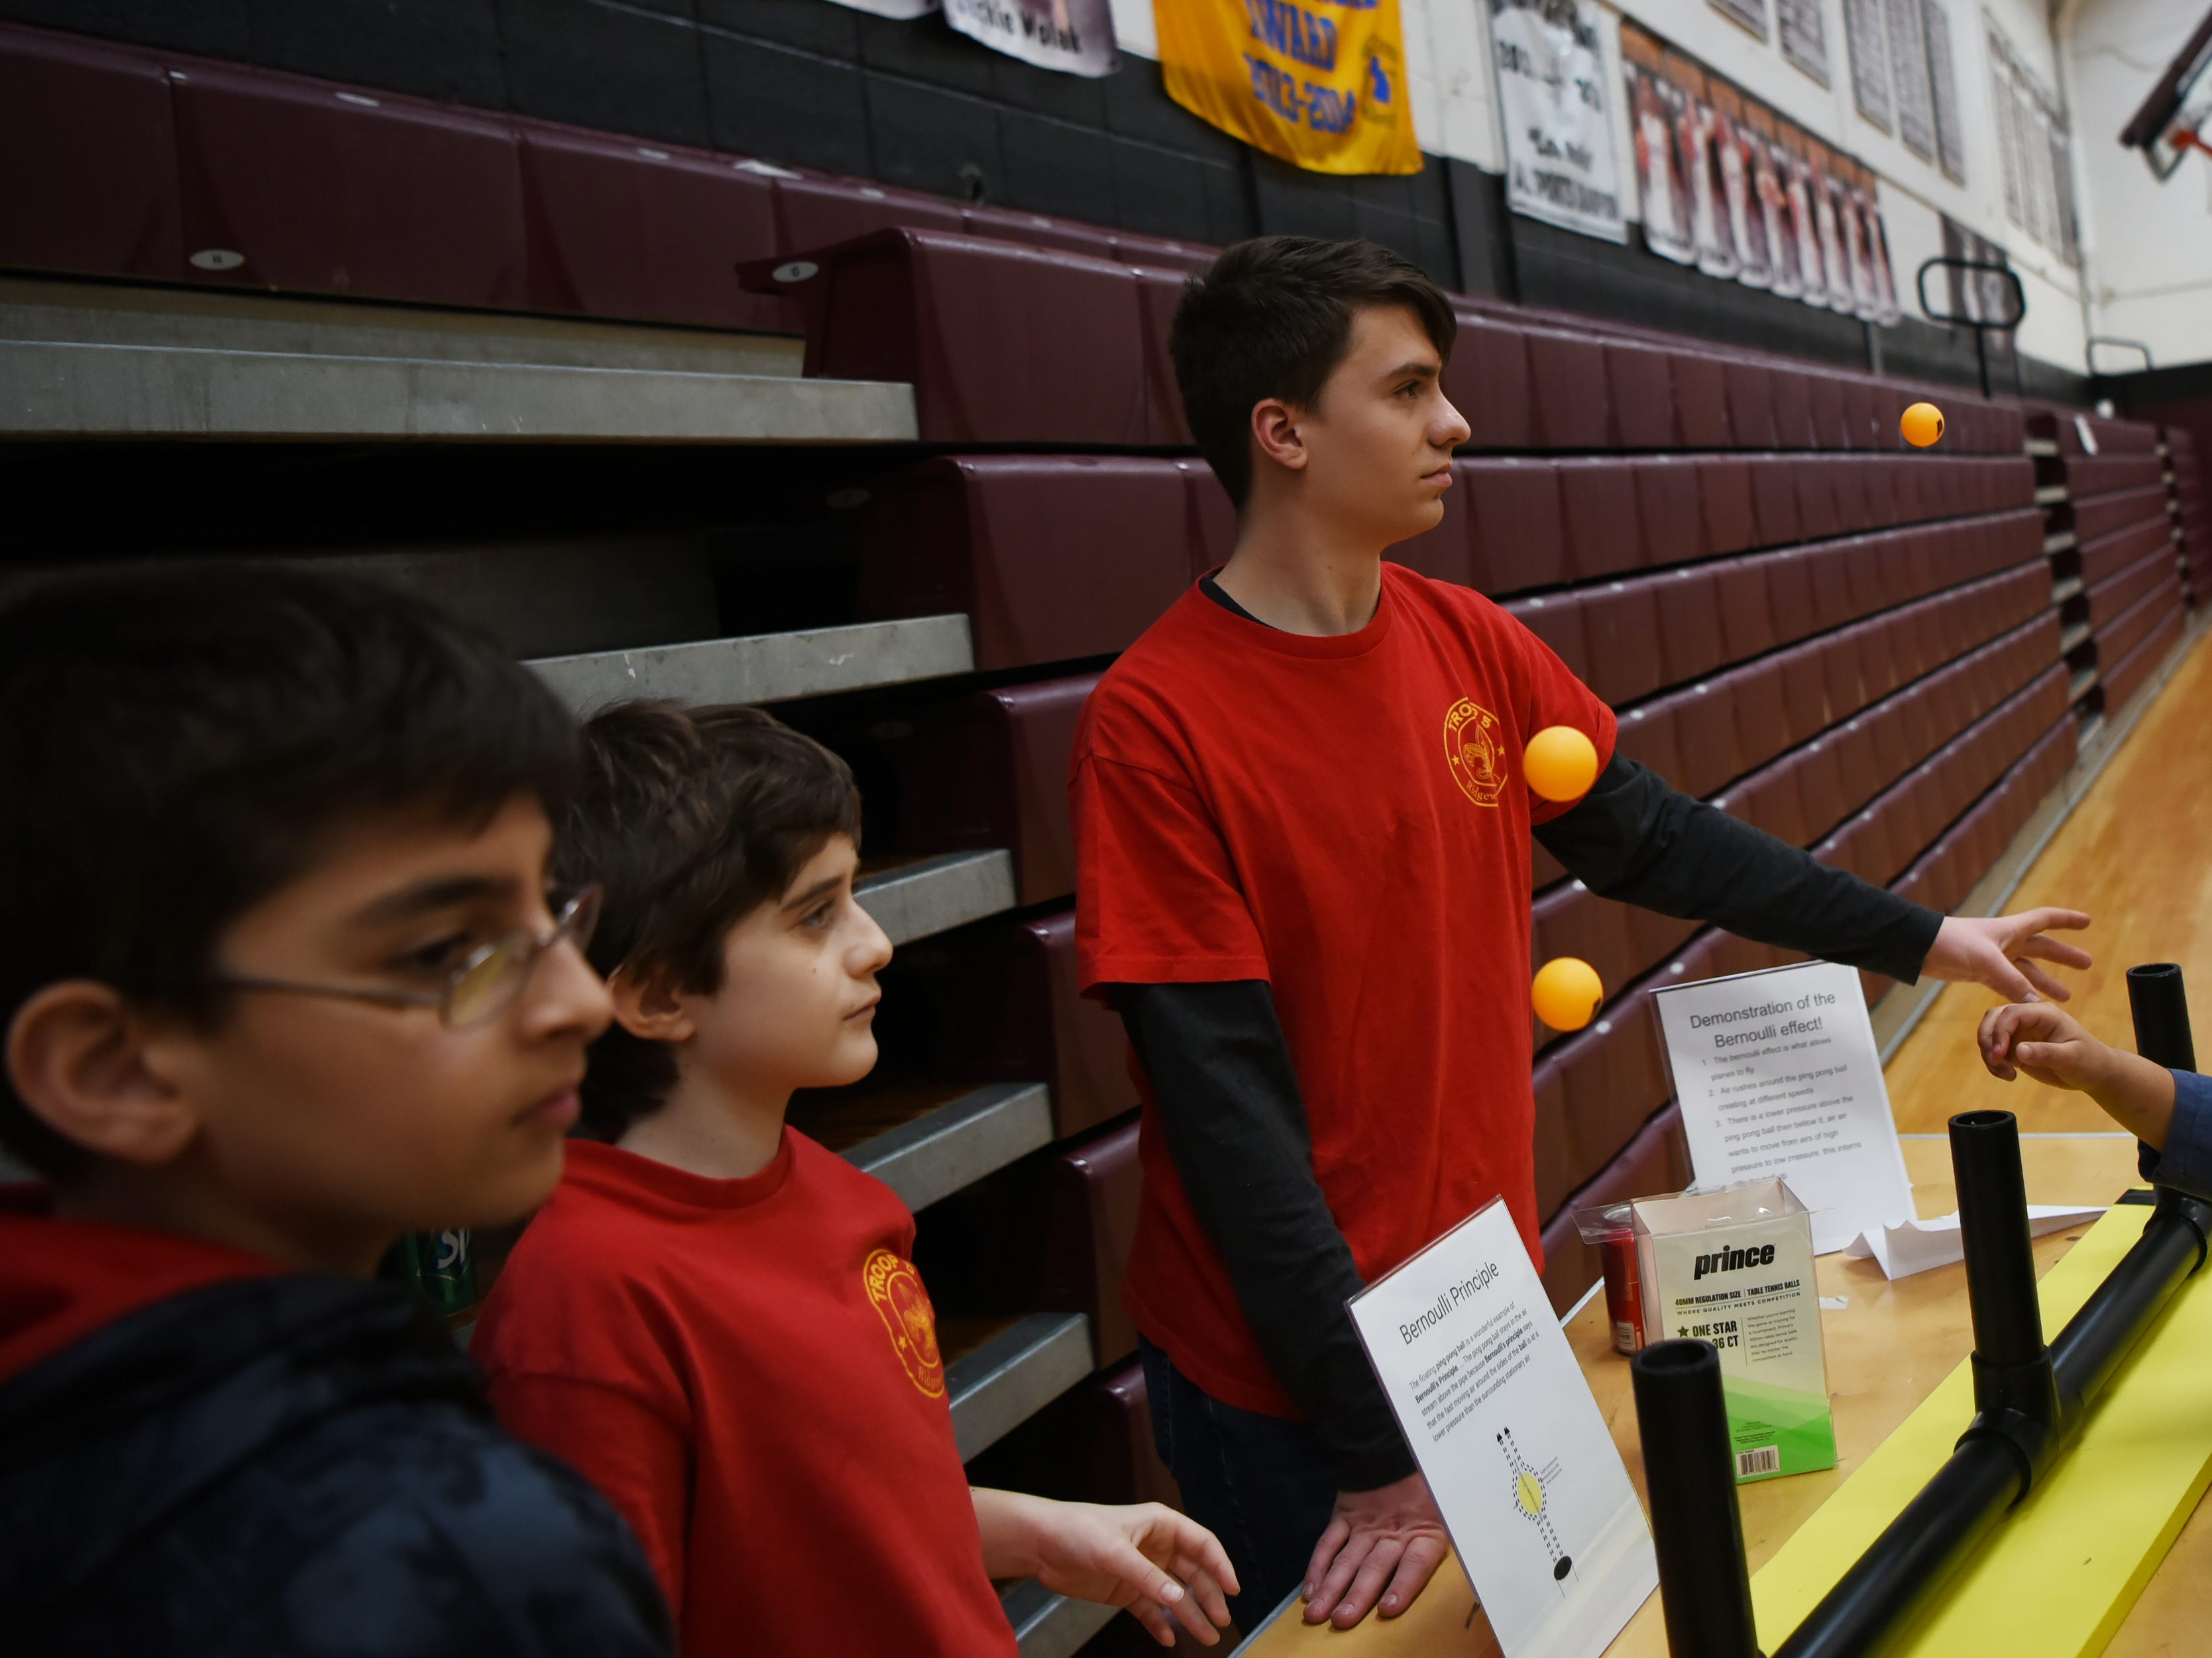 (From left) Anthony Alters, 13, Mario DeAngelin, 12 and Eagle Scout Adam Bock demonstrate the Bernoulli Principle by making ping pong balls float. This is one of the many hands on experiments at the Super Science Saturday held at Ridgewood High School in Ridgewood on Saturday March 2, 2019.